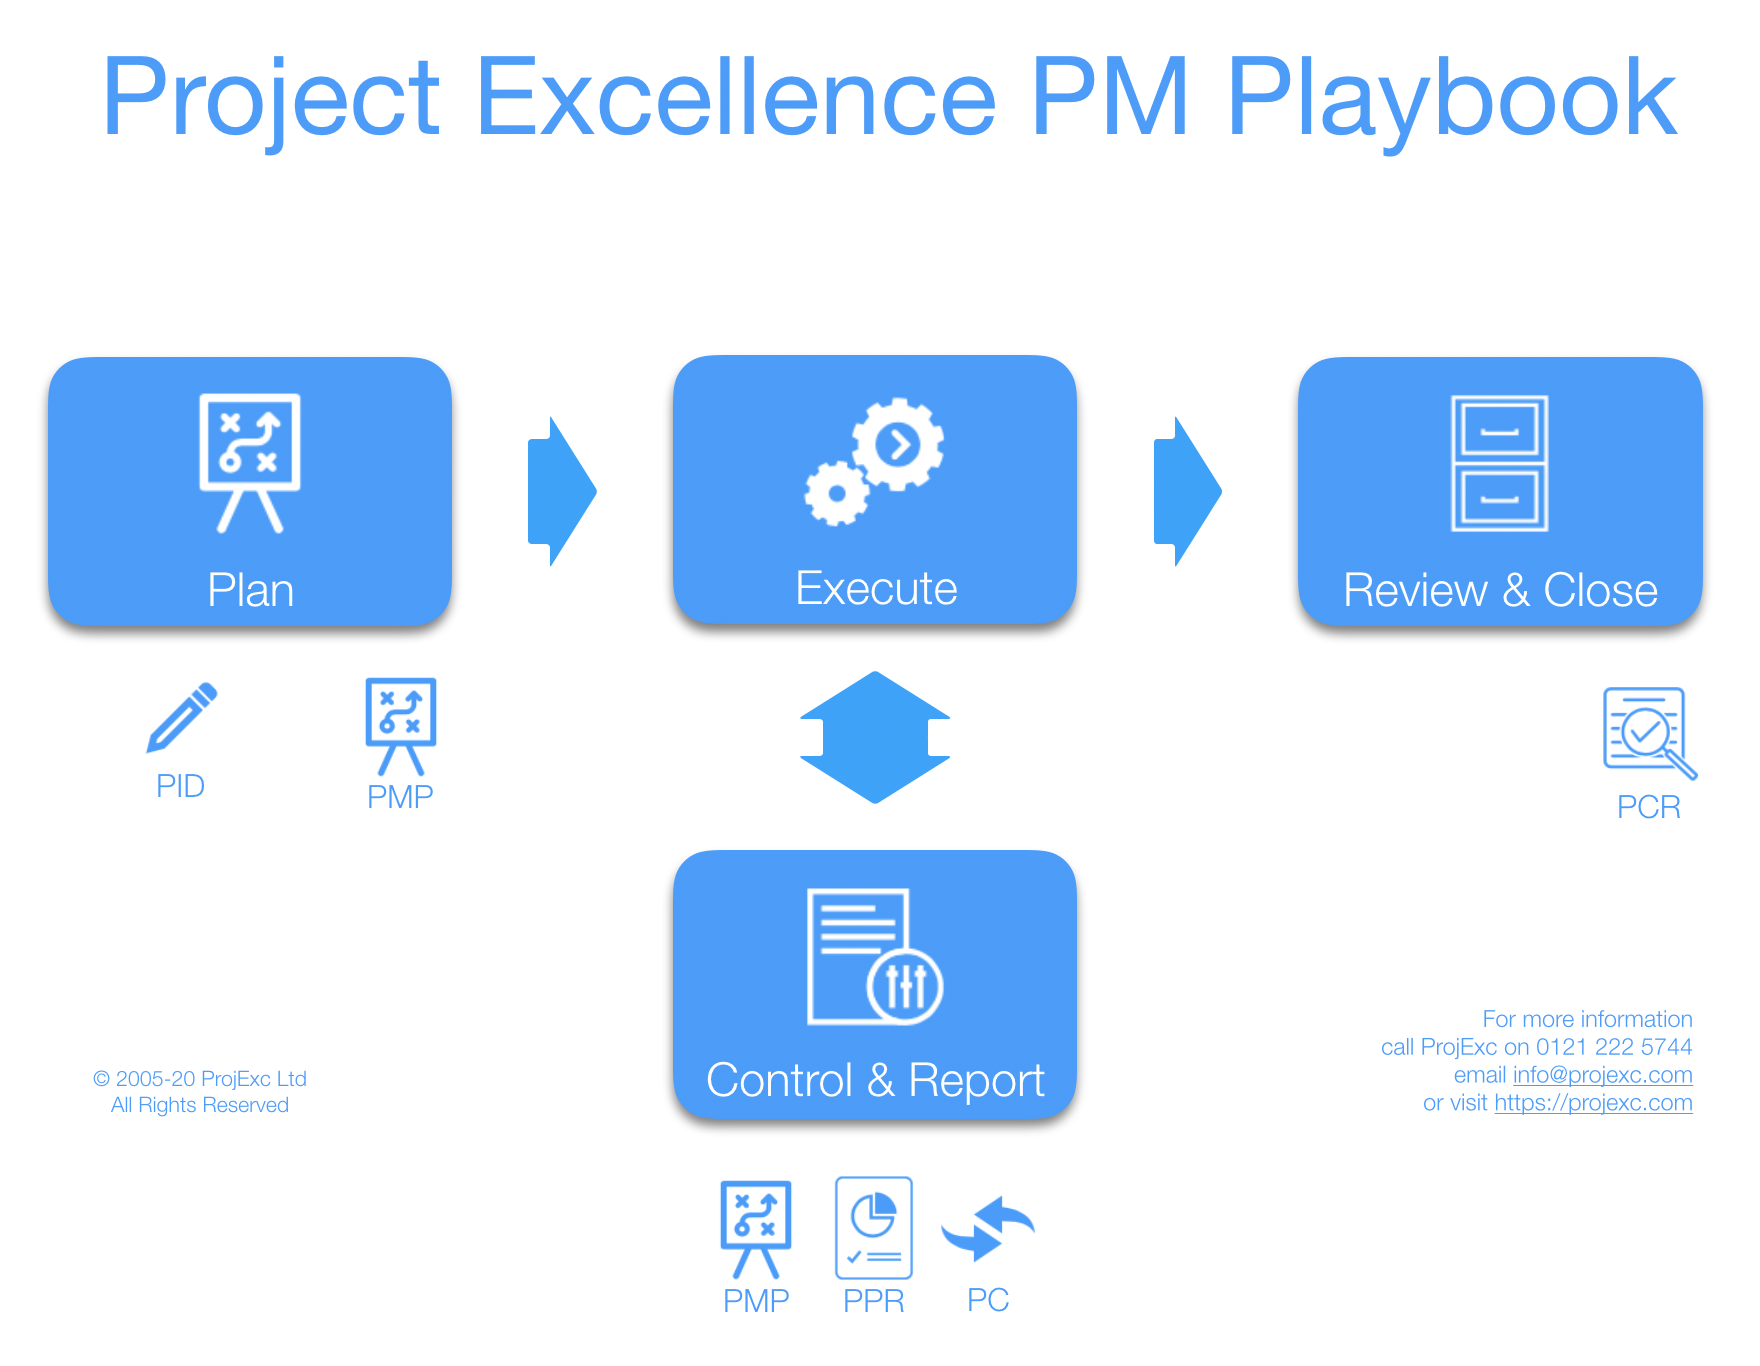 Project Excellence PM Playbook - Plan, Execute, Control & Report, and Review & Close